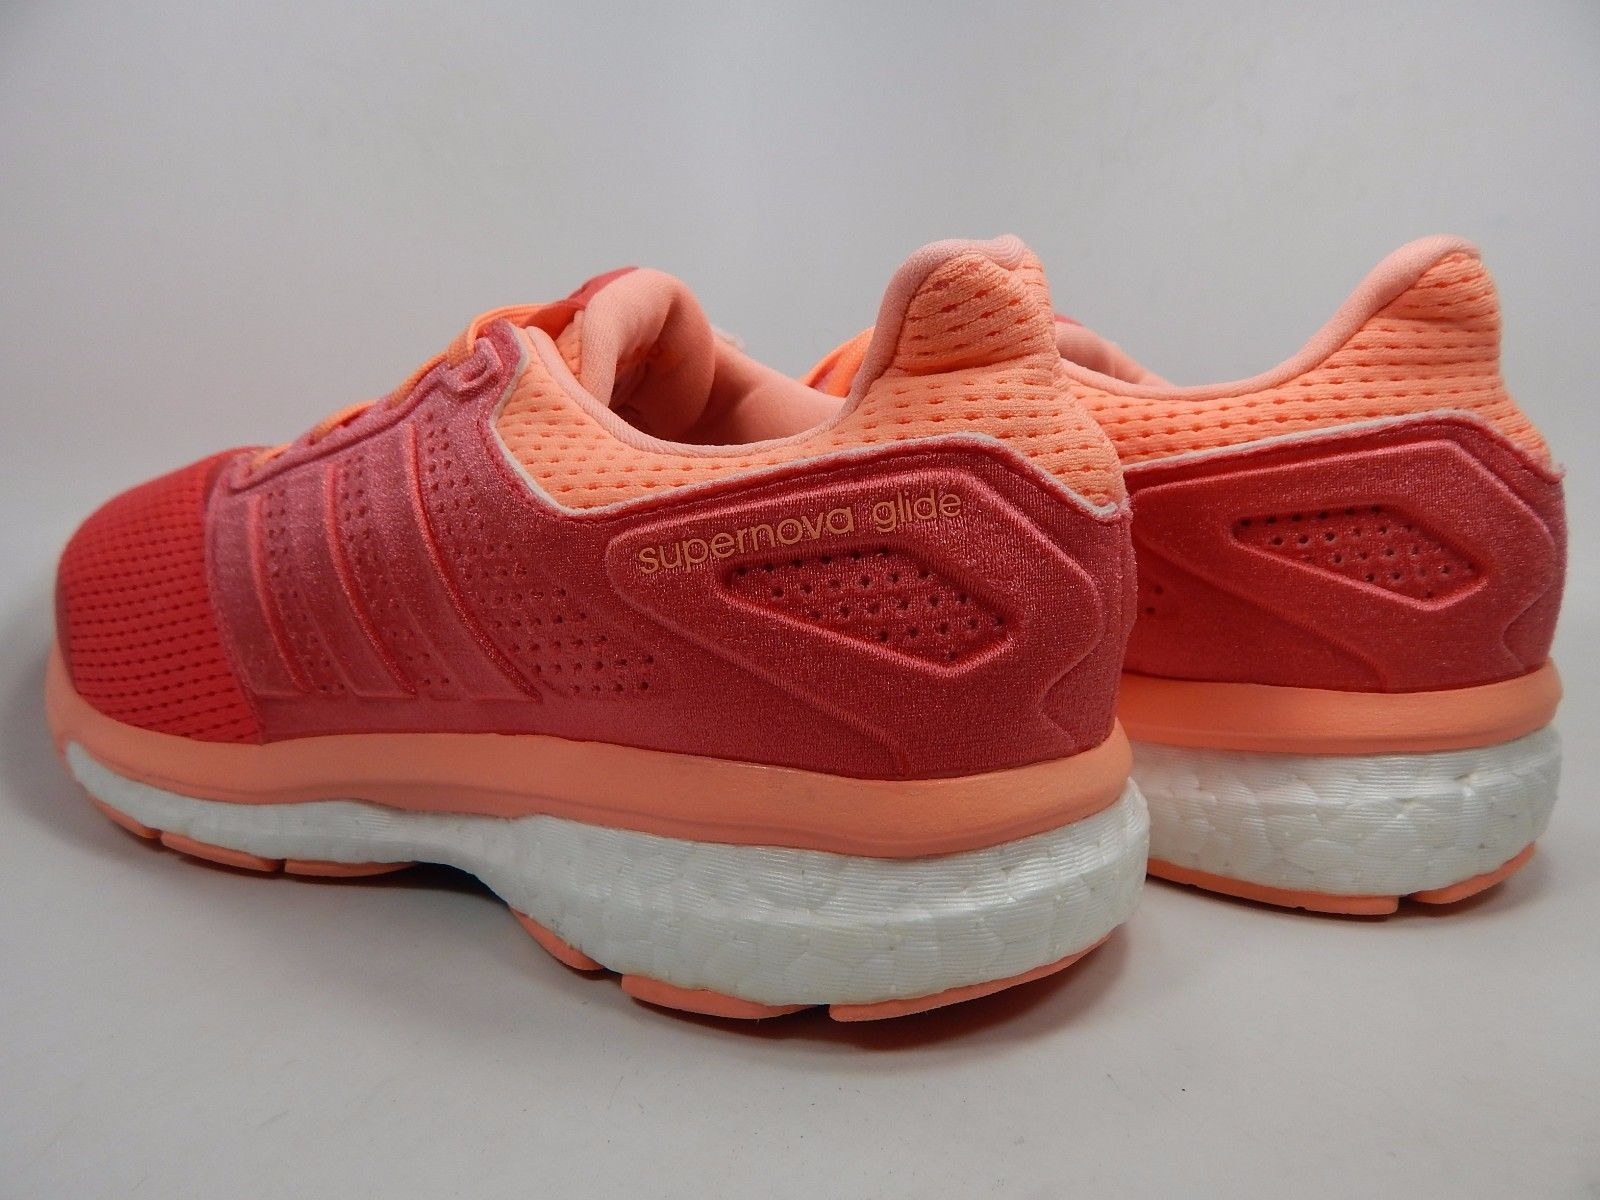 Adidas Supernova Glide 8 Women's Running Shoes Sz US 10 M (B) EU 42/ 2/3 AF6558